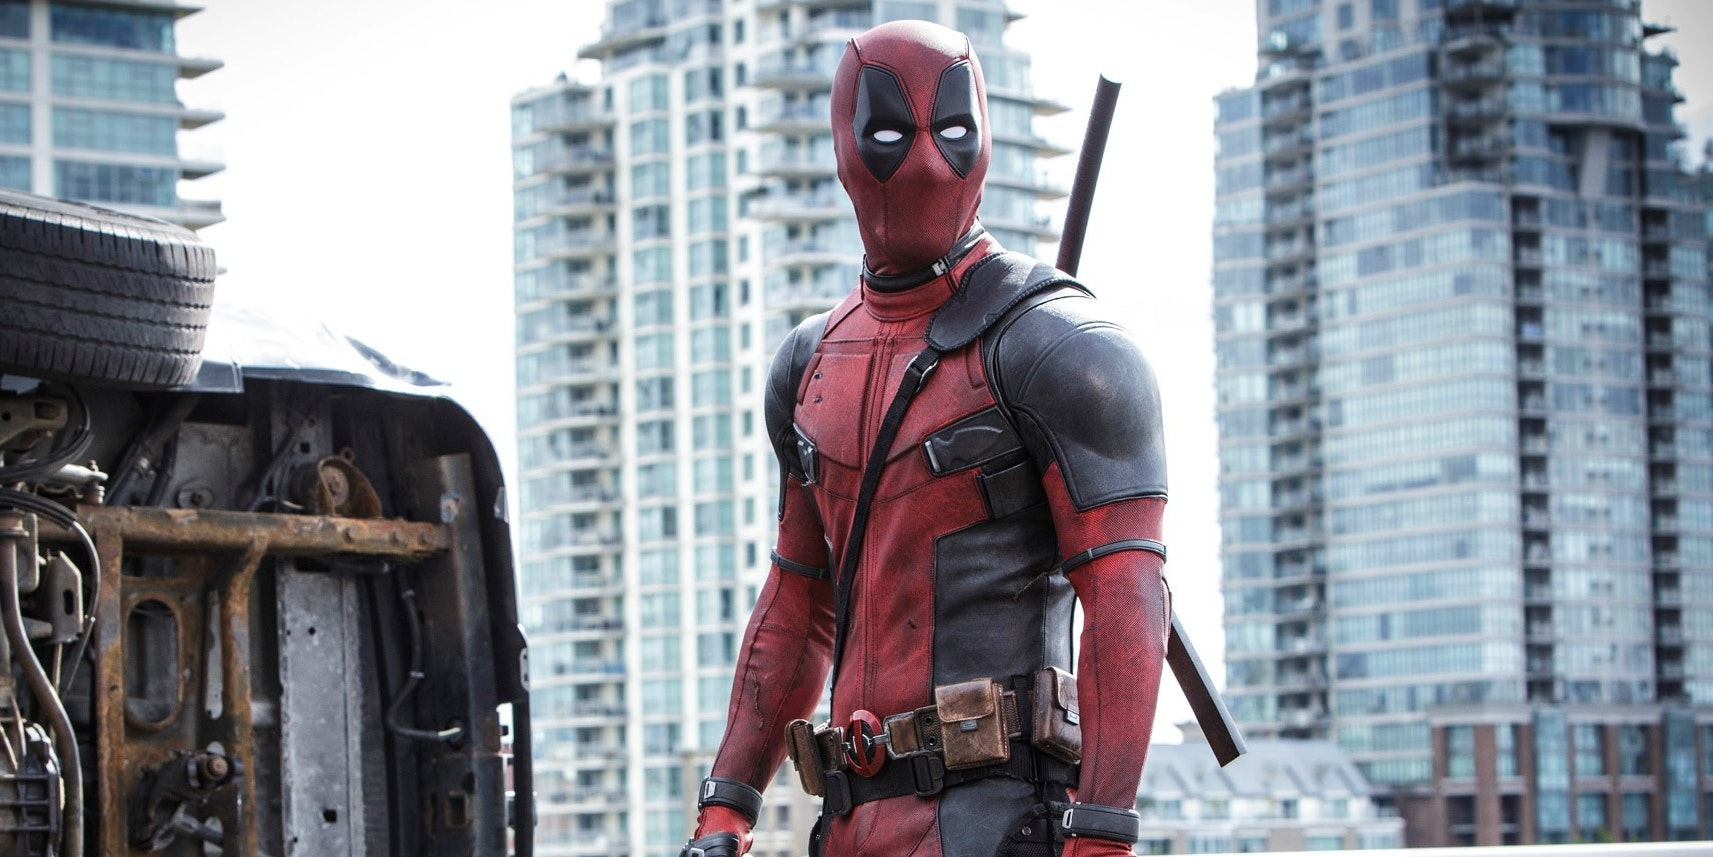 Where Does 'Deadpool' Fit in the 'X-Men' Universe?